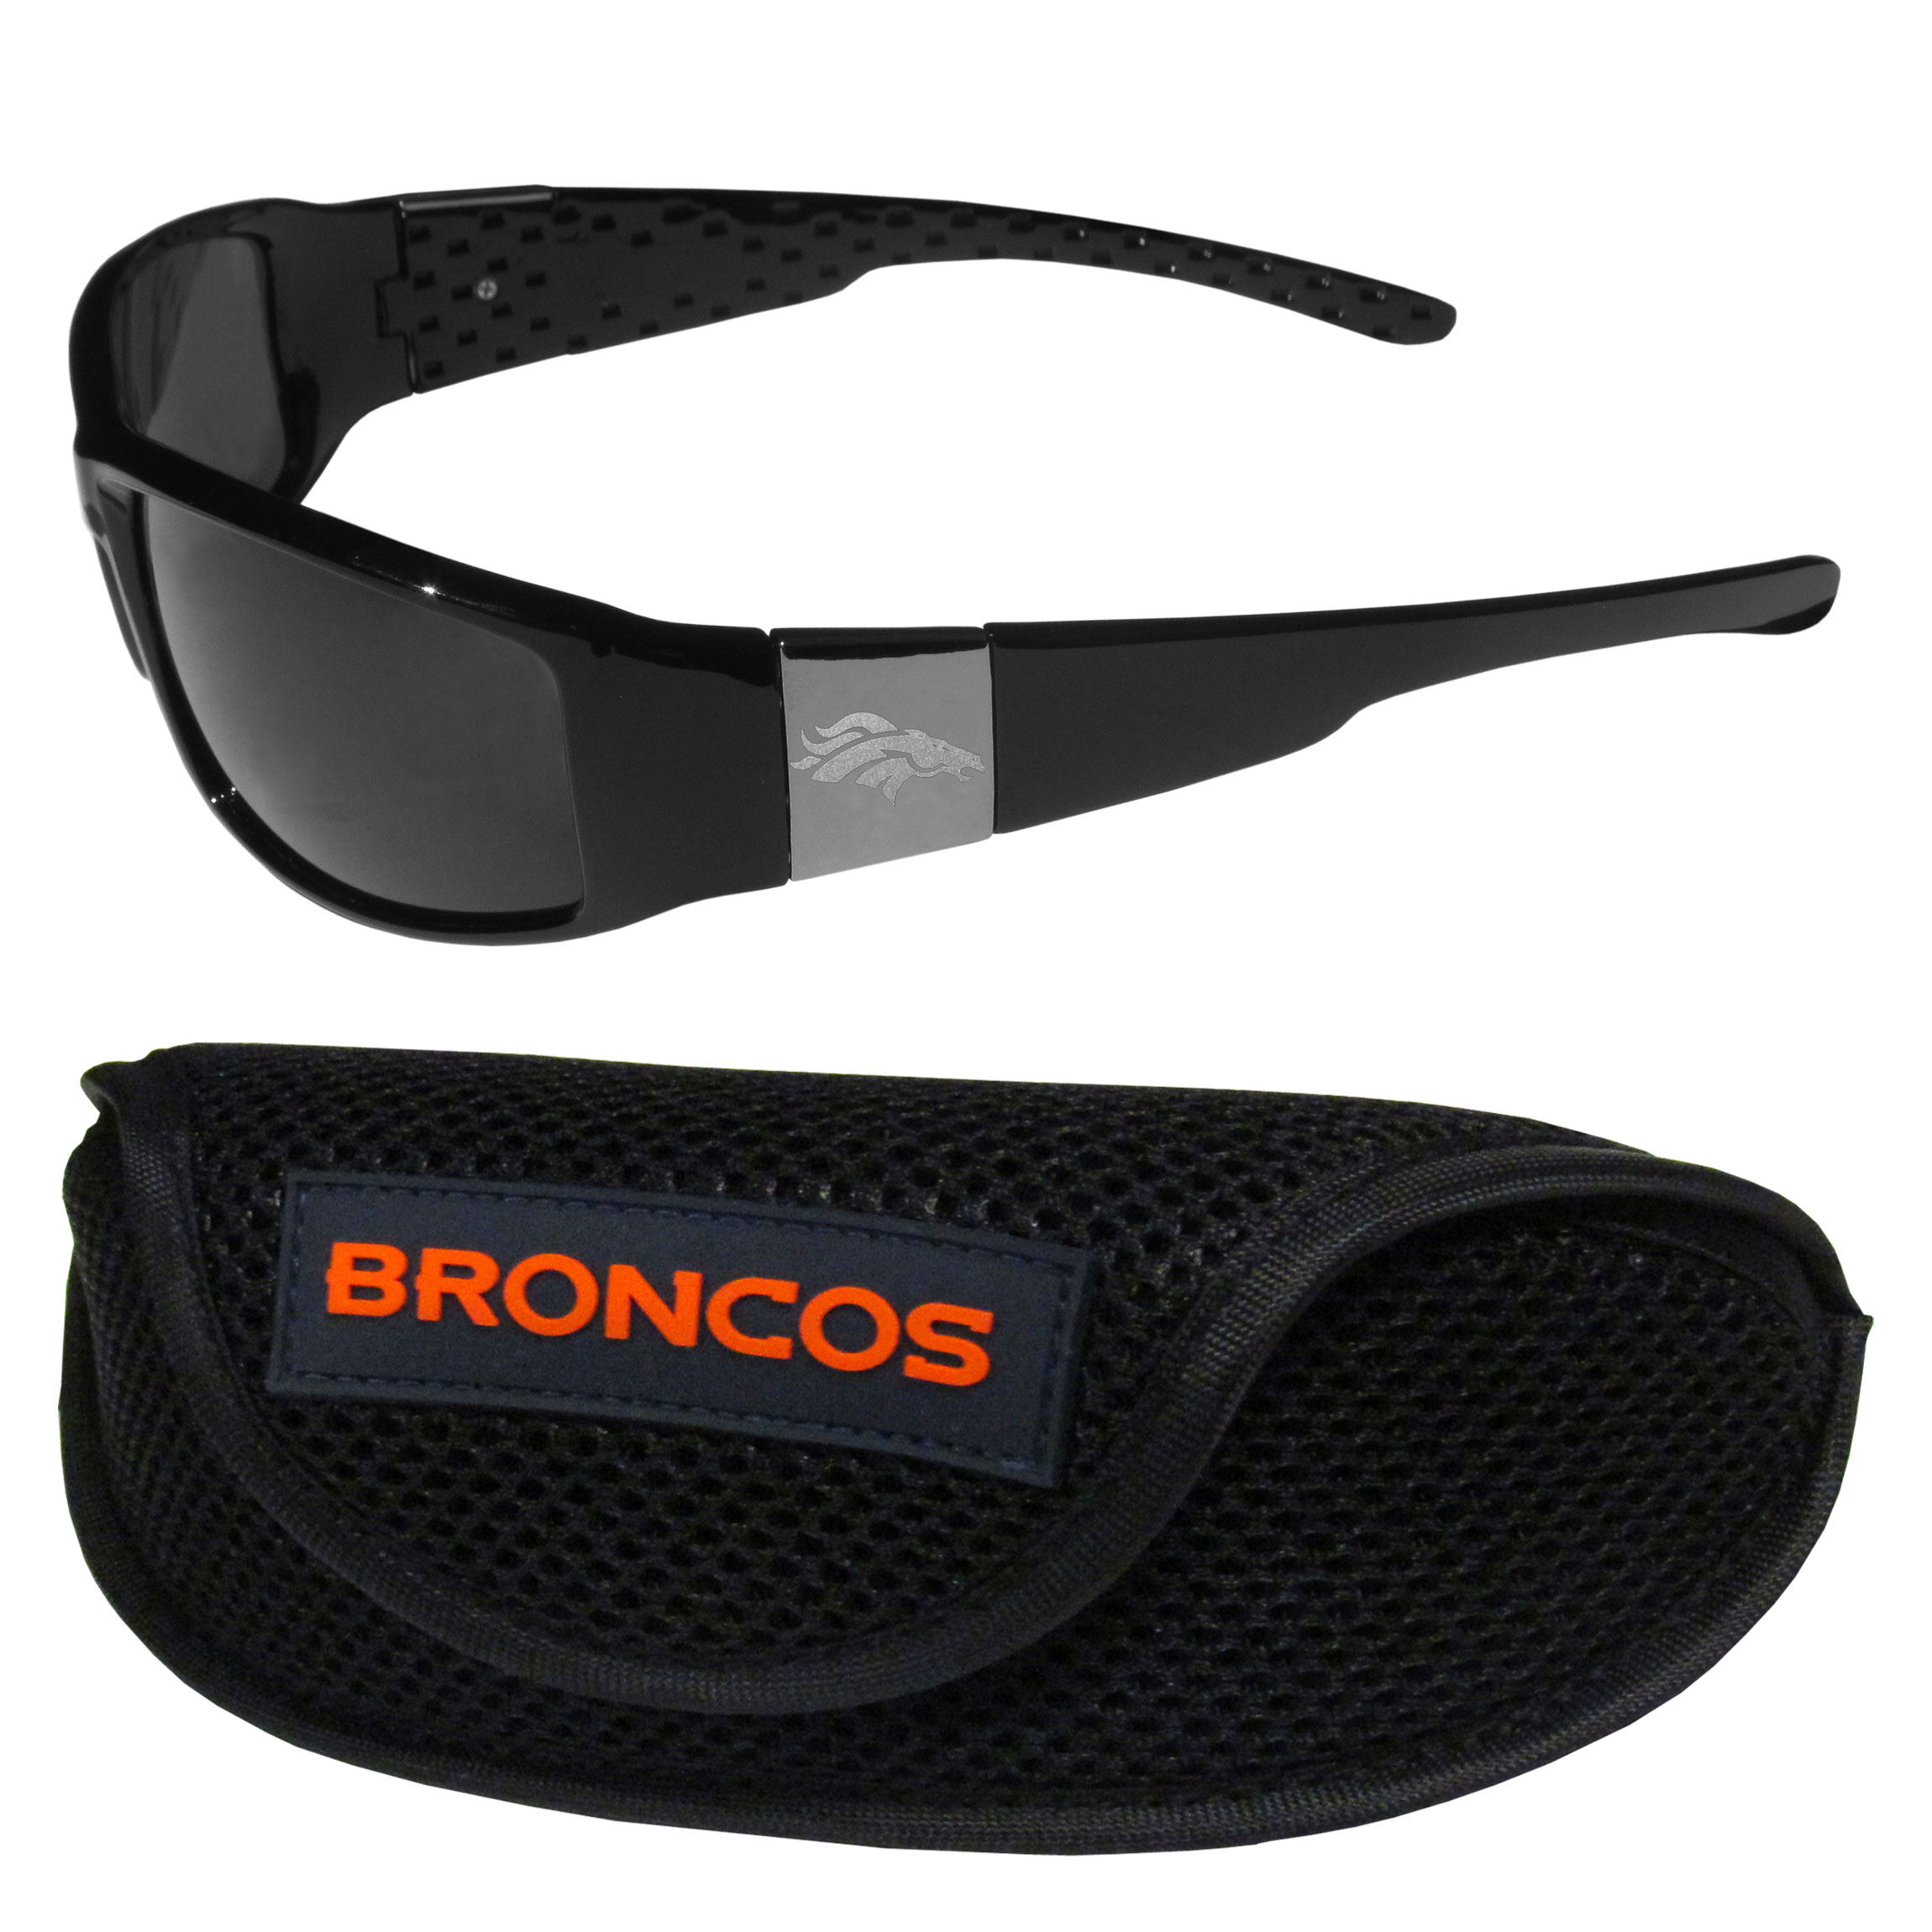 Denver Broncos Chrome Wrap Sunglasses and Sports Case - Our sleek and stylish Denver Broncos chrome wrap sunglasses and our sporty mesh case. The sunglasses feature etched team logos on each arm and 100% UVA/UVB protection. The case features a large and colorful team emblem.